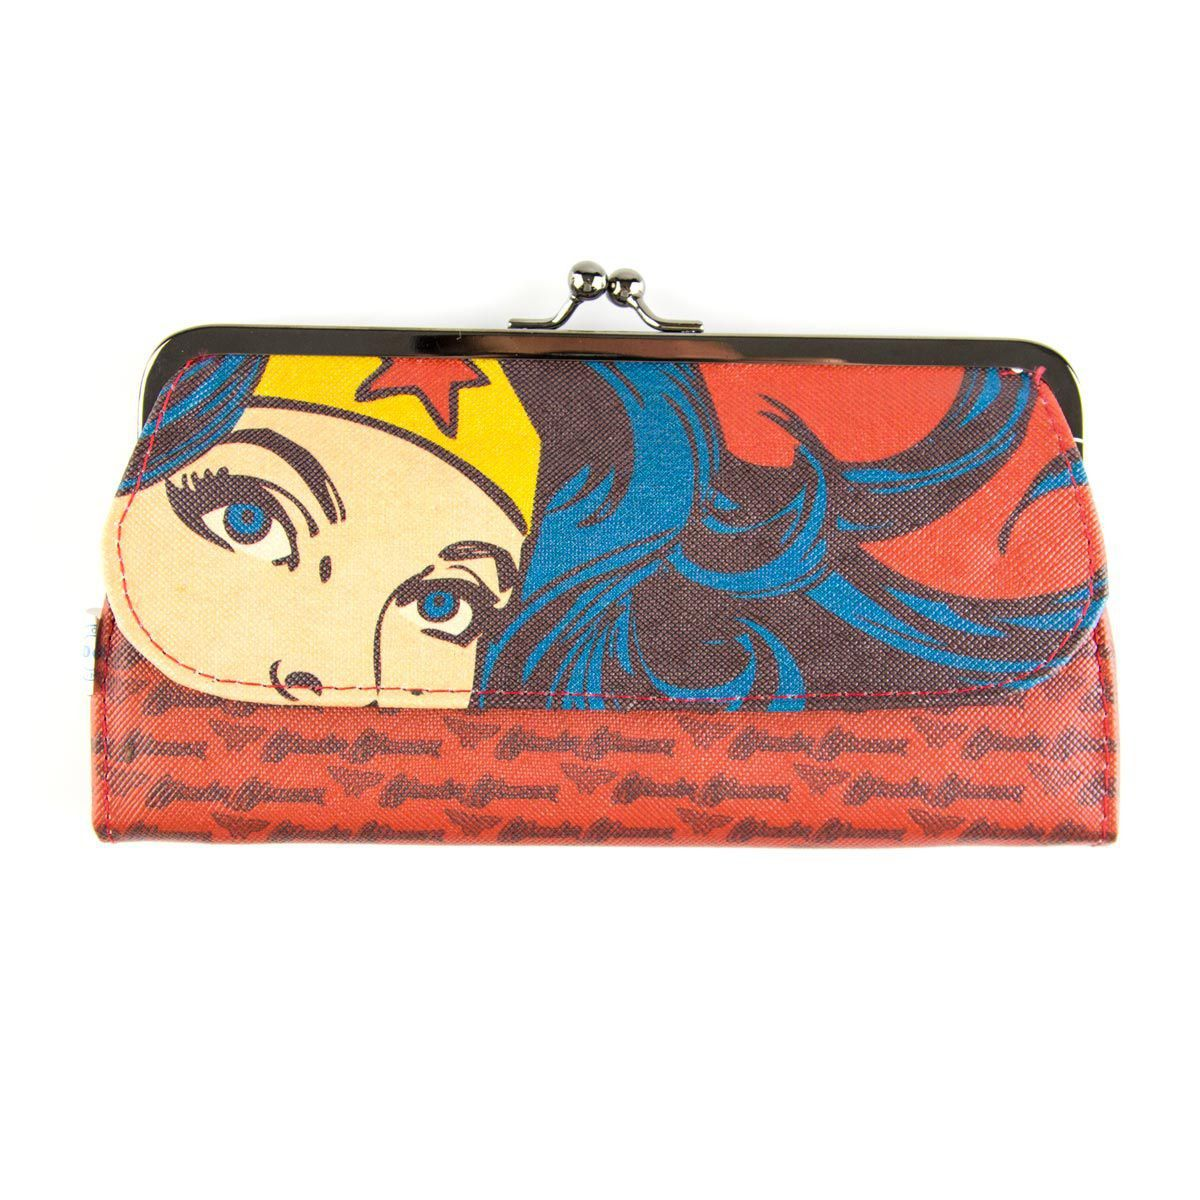 Carteira Wonder Woman Vermelha  - bandUP Store Marketplace